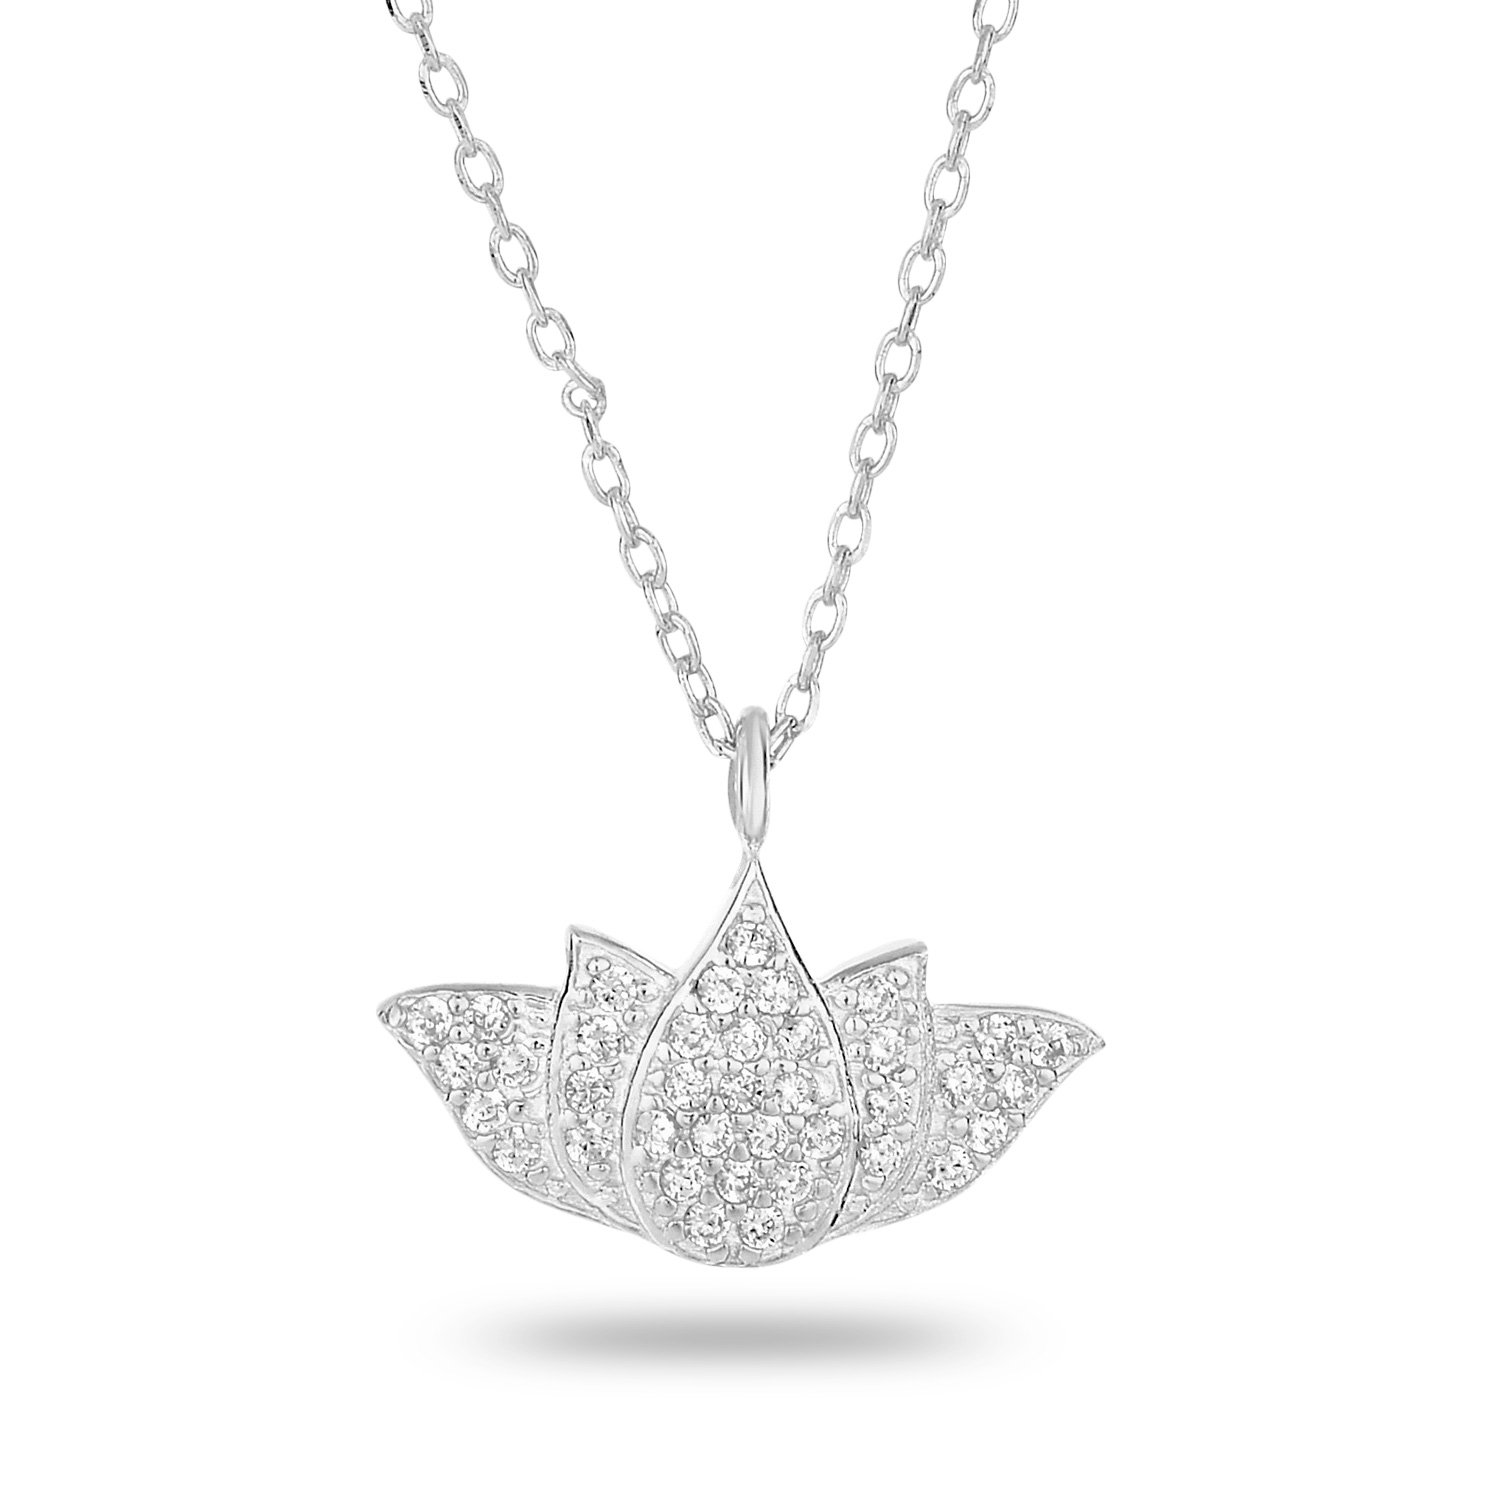 Rhodium-Plated Sterling Silver Cubic Zirconia Pave Matte Finish Lotus Pendant Necklace, 18\